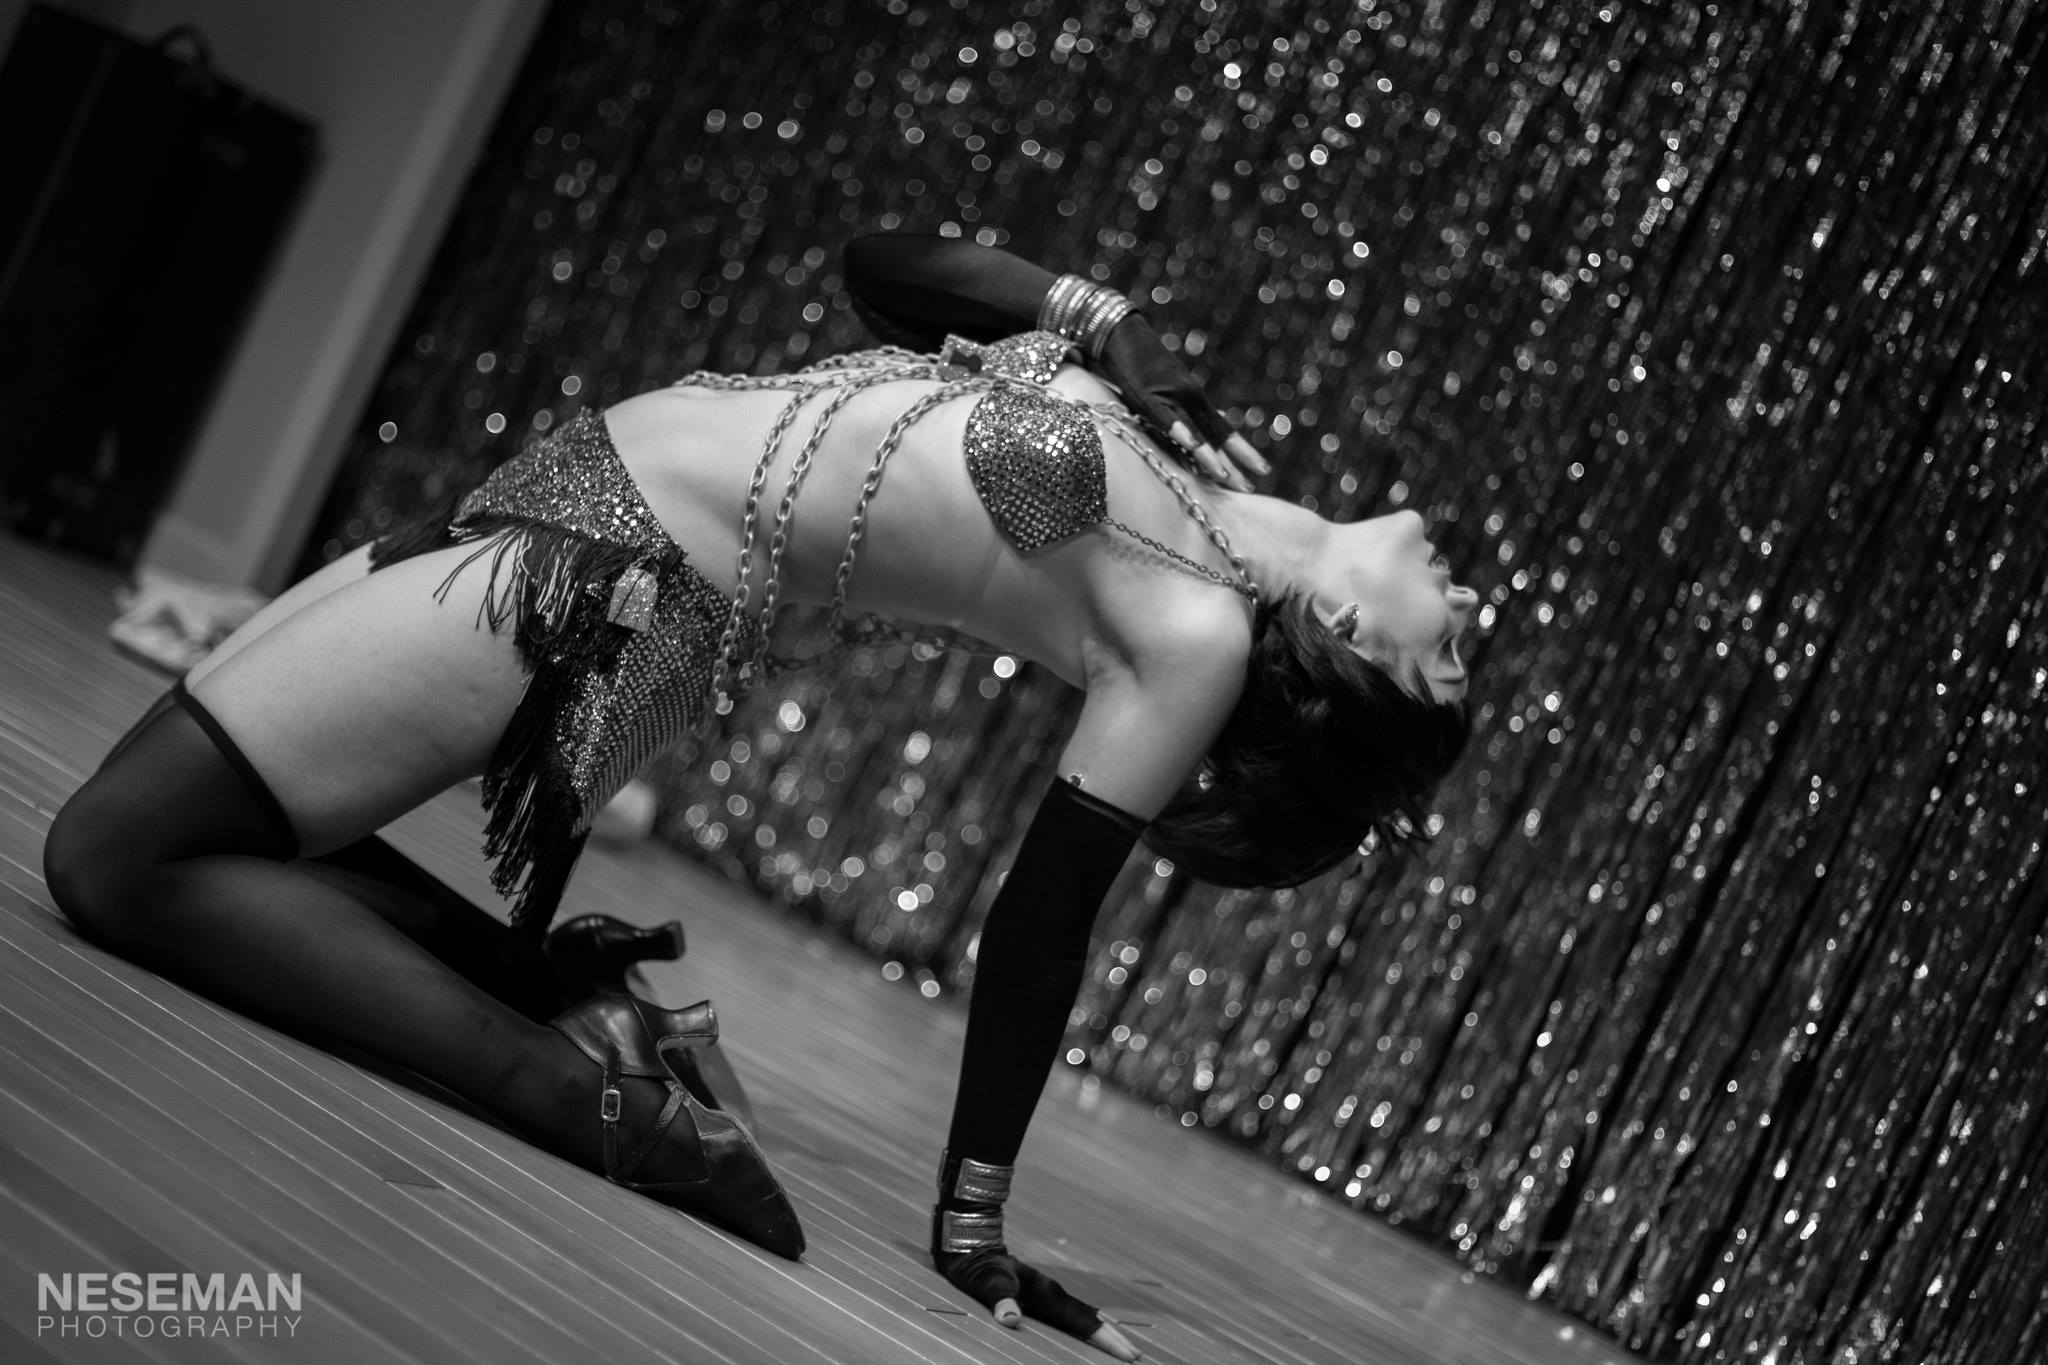 Bella Ciao in chains by Neseman Photography.jpg